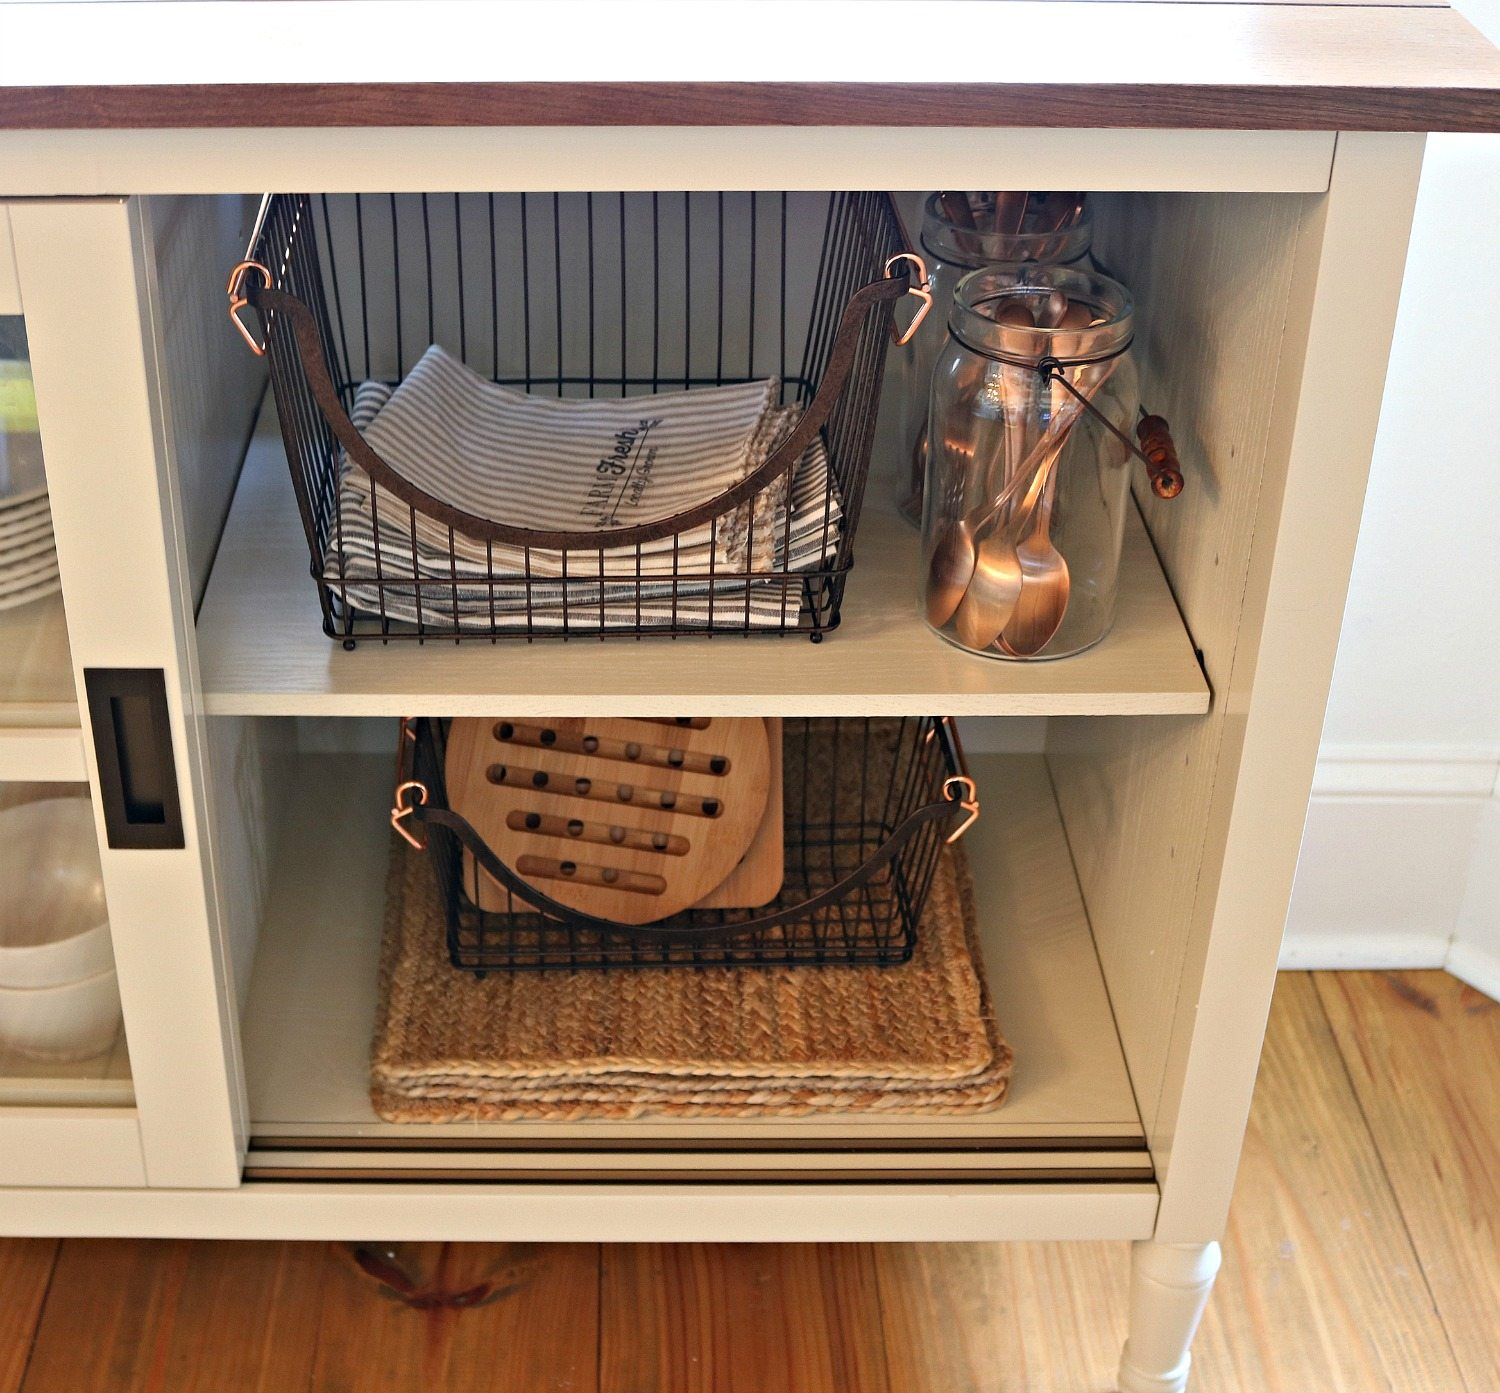 Dining storage ideas with baskets and mason jars